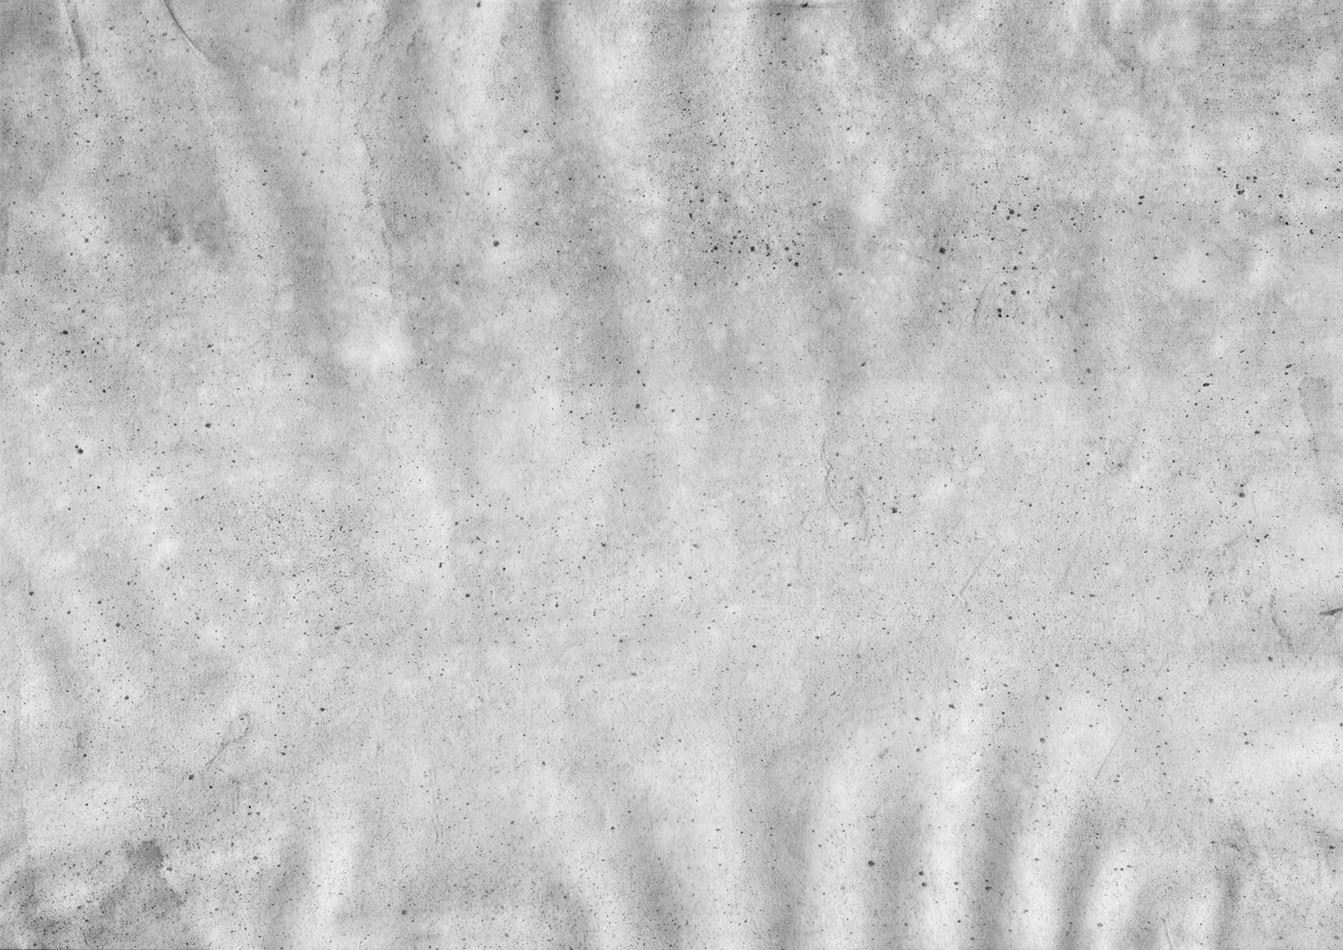 Texture-Water-Stain-Speckled-e1287582315796.jpg